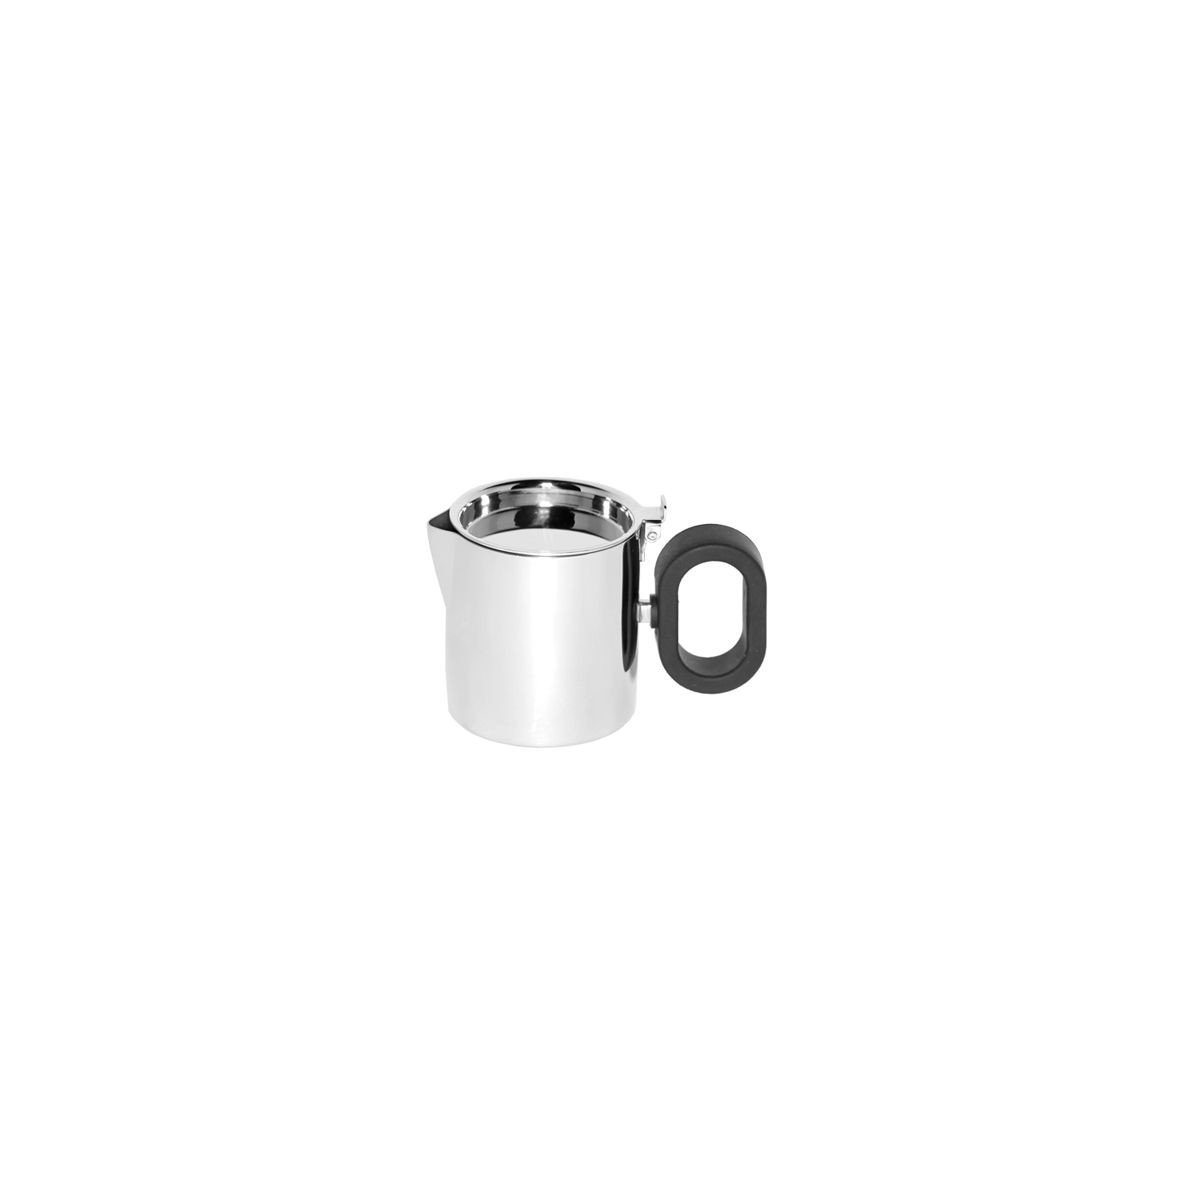 Service Ideas SM-25 SteelForme Creamer with Lid, 5 oz.